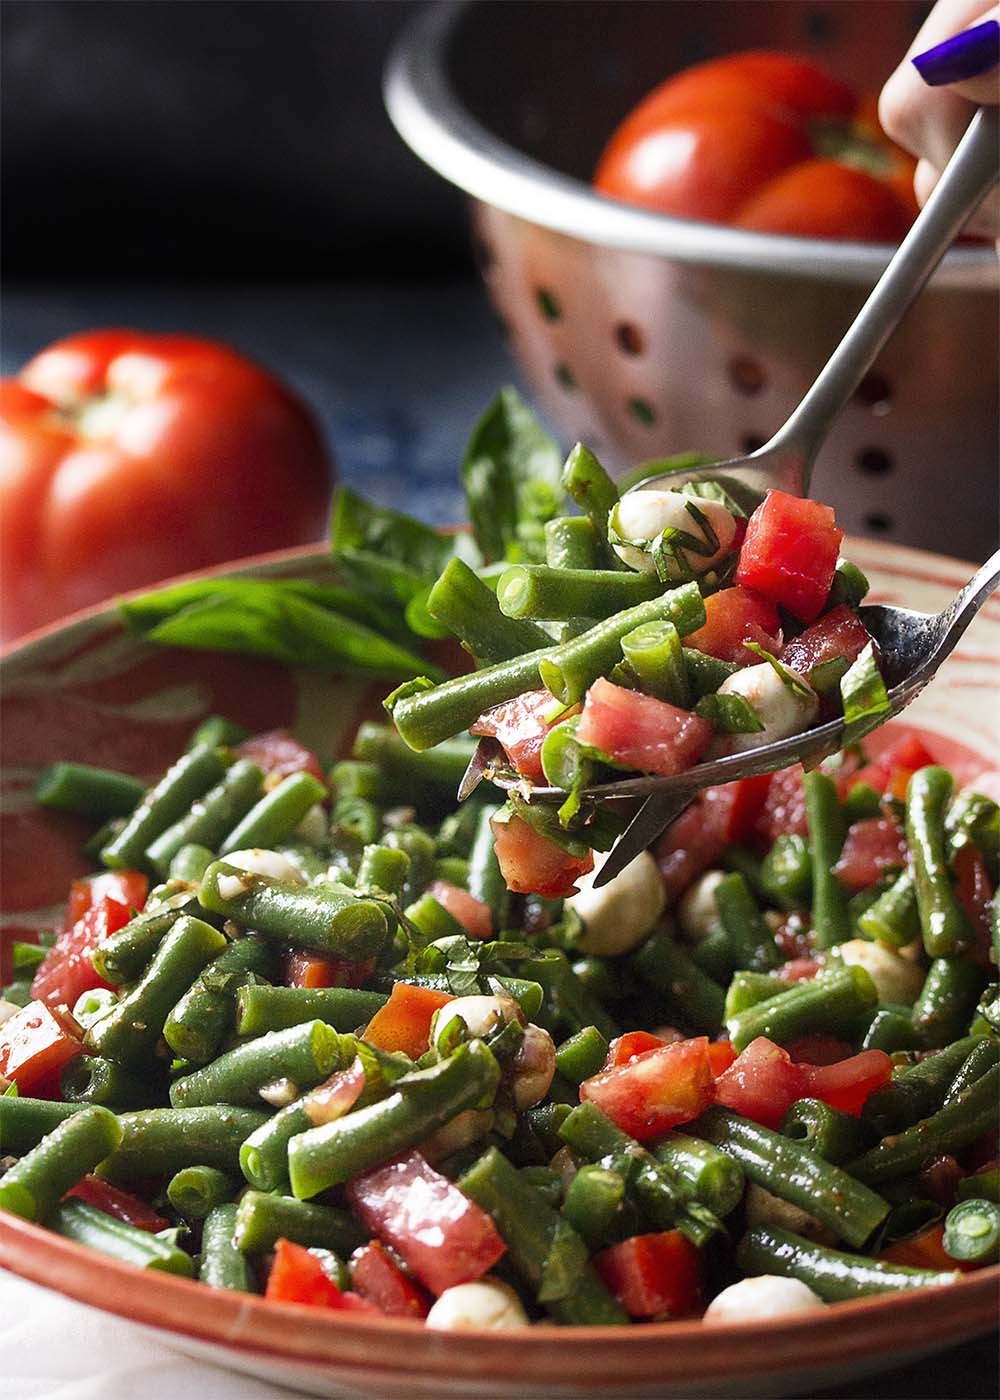 Scooping up a portion of green bean and tomato salad from the serving bowl.